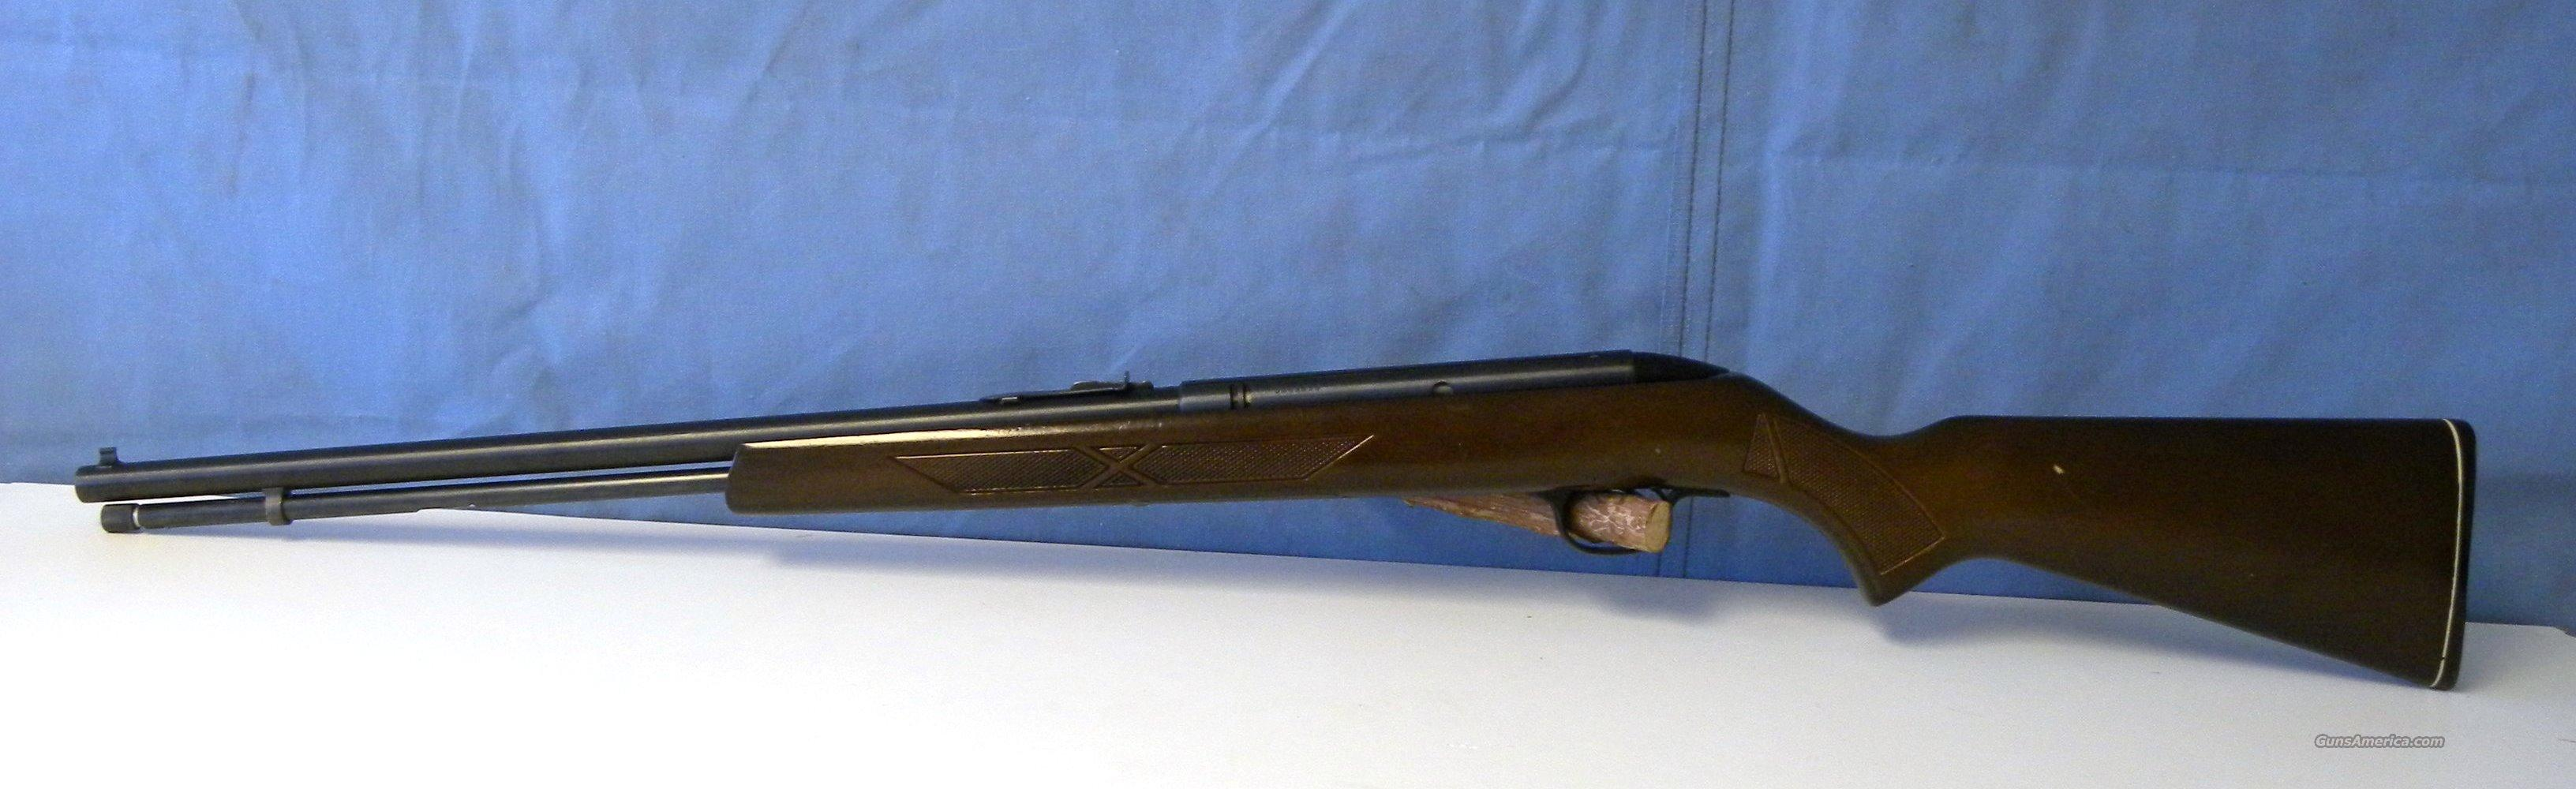 Sears 2200 (Savage 187 A)  Guns > Rifles > Savage Rifles > Other